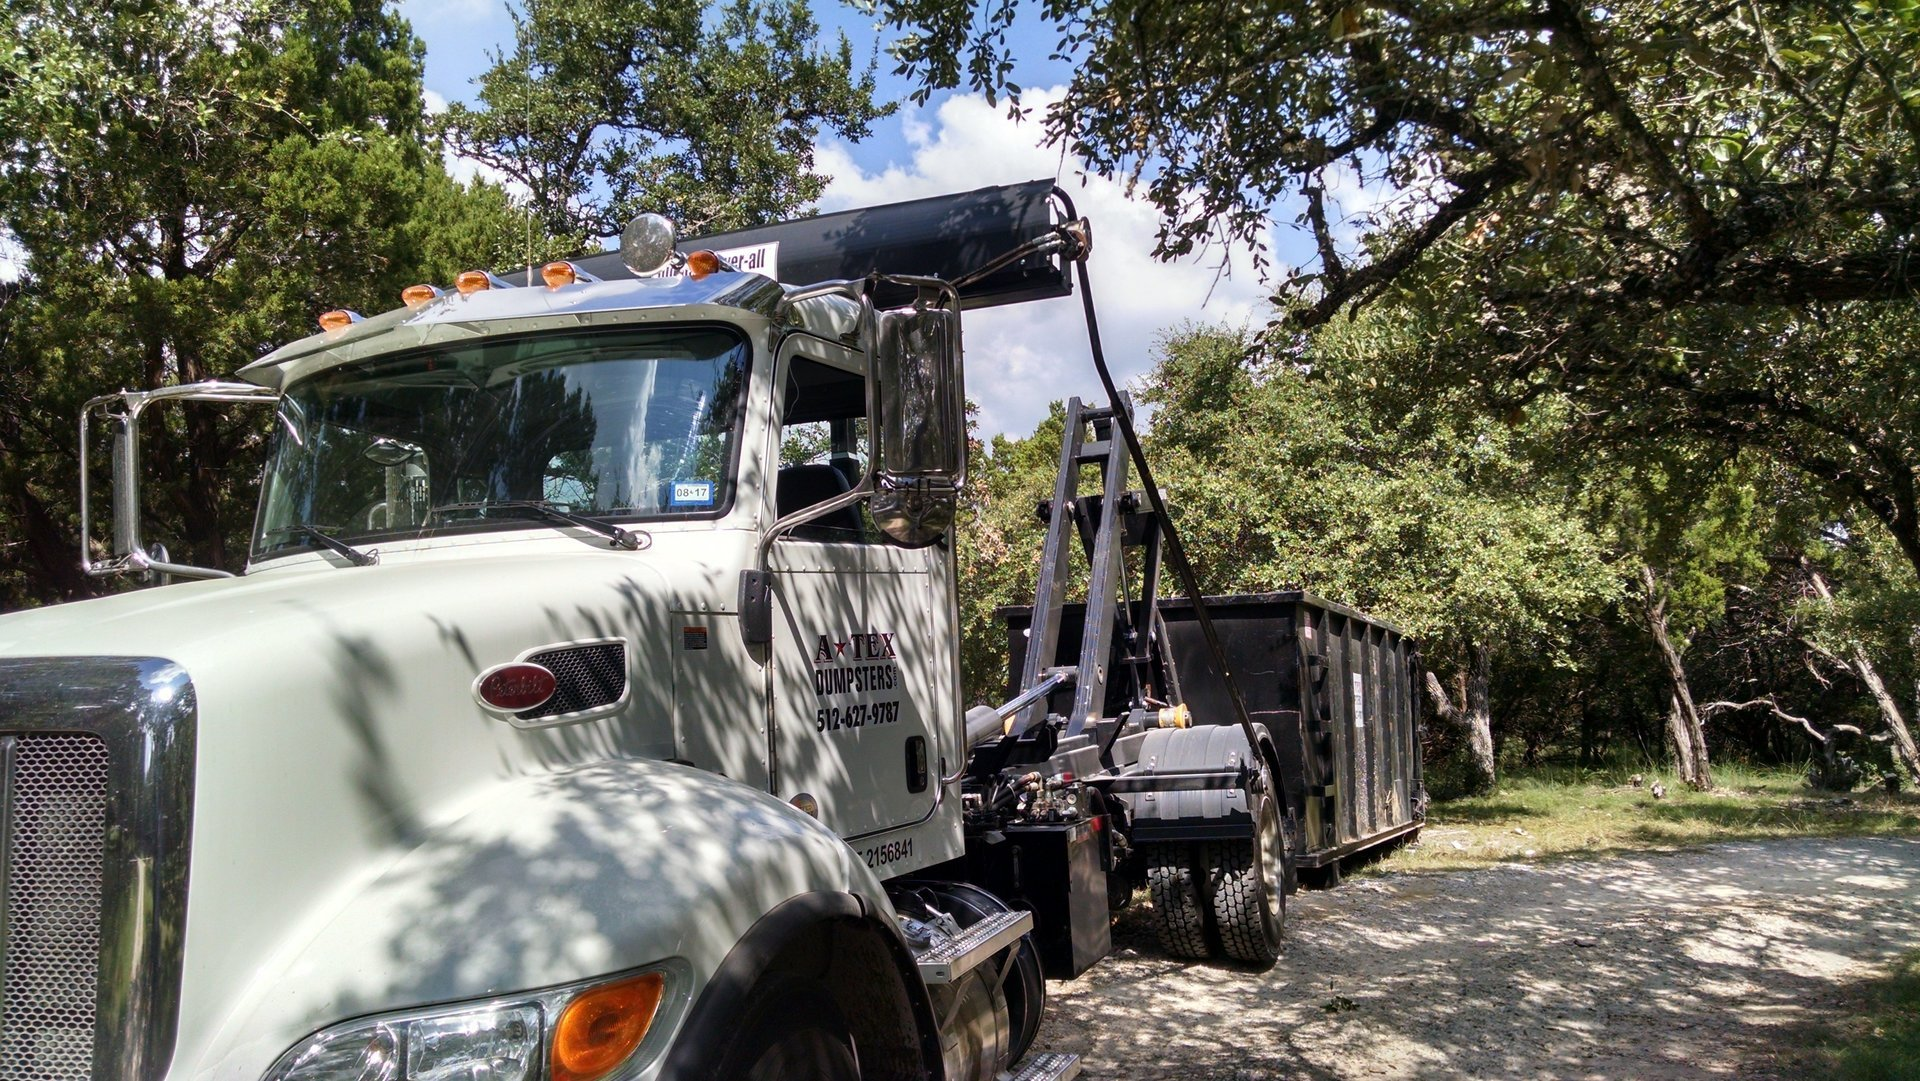 dumpster rentals for homes in Austin, TX